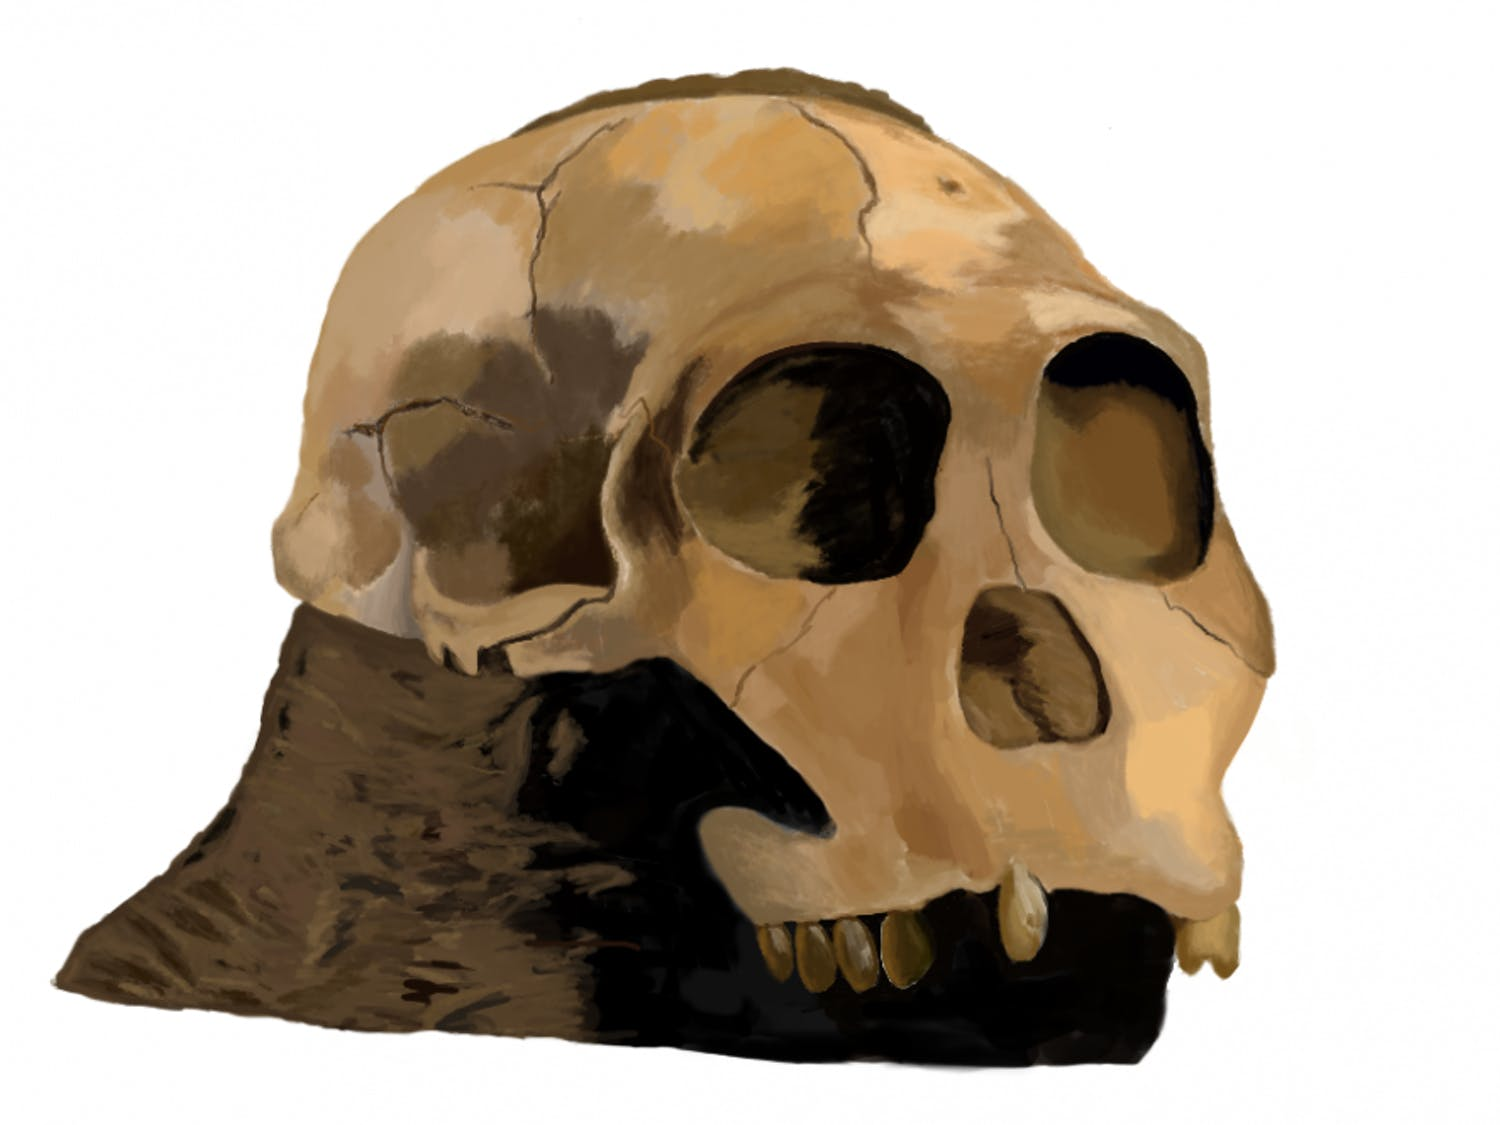 Molly Selba, a 27-year-old Ph.D. student studying biological anthropology at UF, drew two hominid relatives of humans with the Procreate app for the showcase.